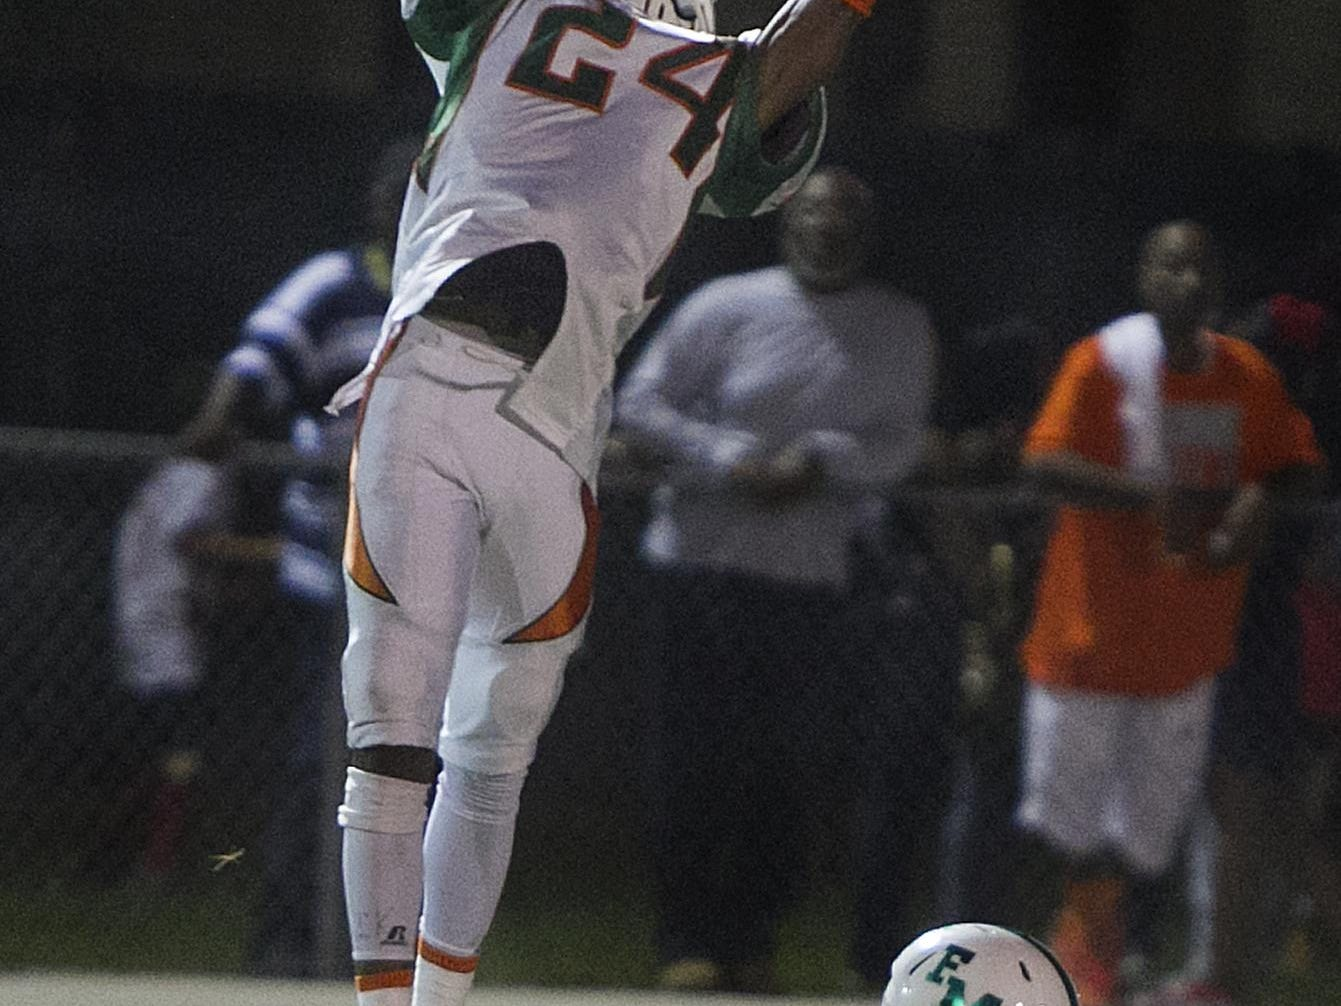 Dunbar receiver Lemarcus Young goes up for a reception above Fort Myers defender Jarrett Bassett at Sam Sirianni Field in Fort Myers Friday.